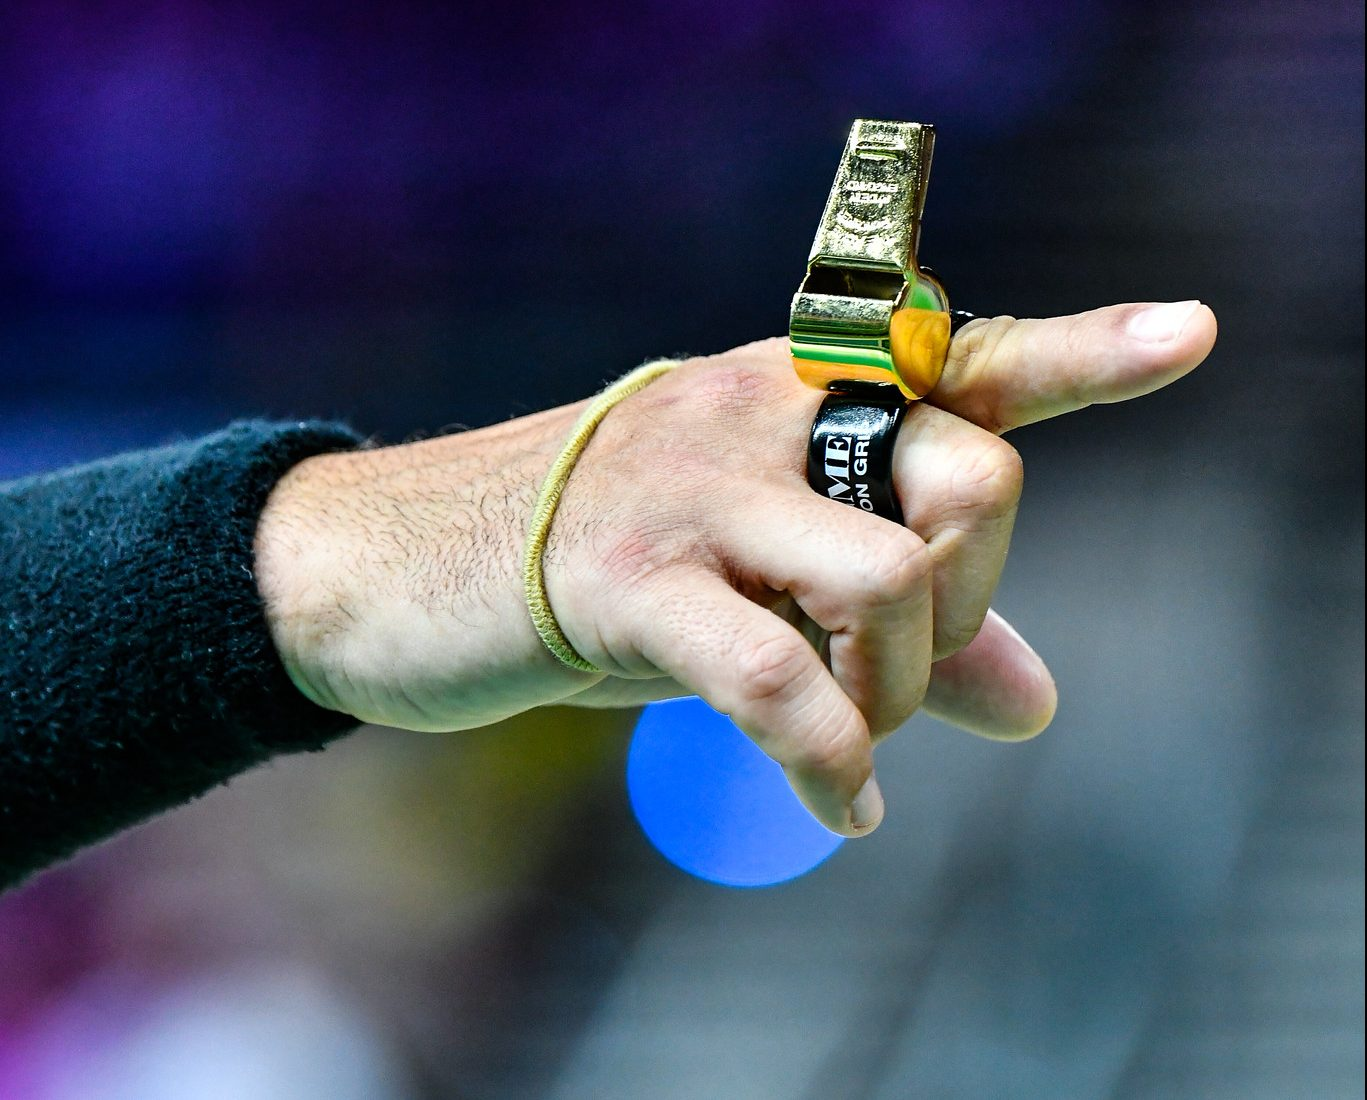 ACME Whistle, gold whistle, Gary's whistle, umpire, netball. Photo: Simon Leonard